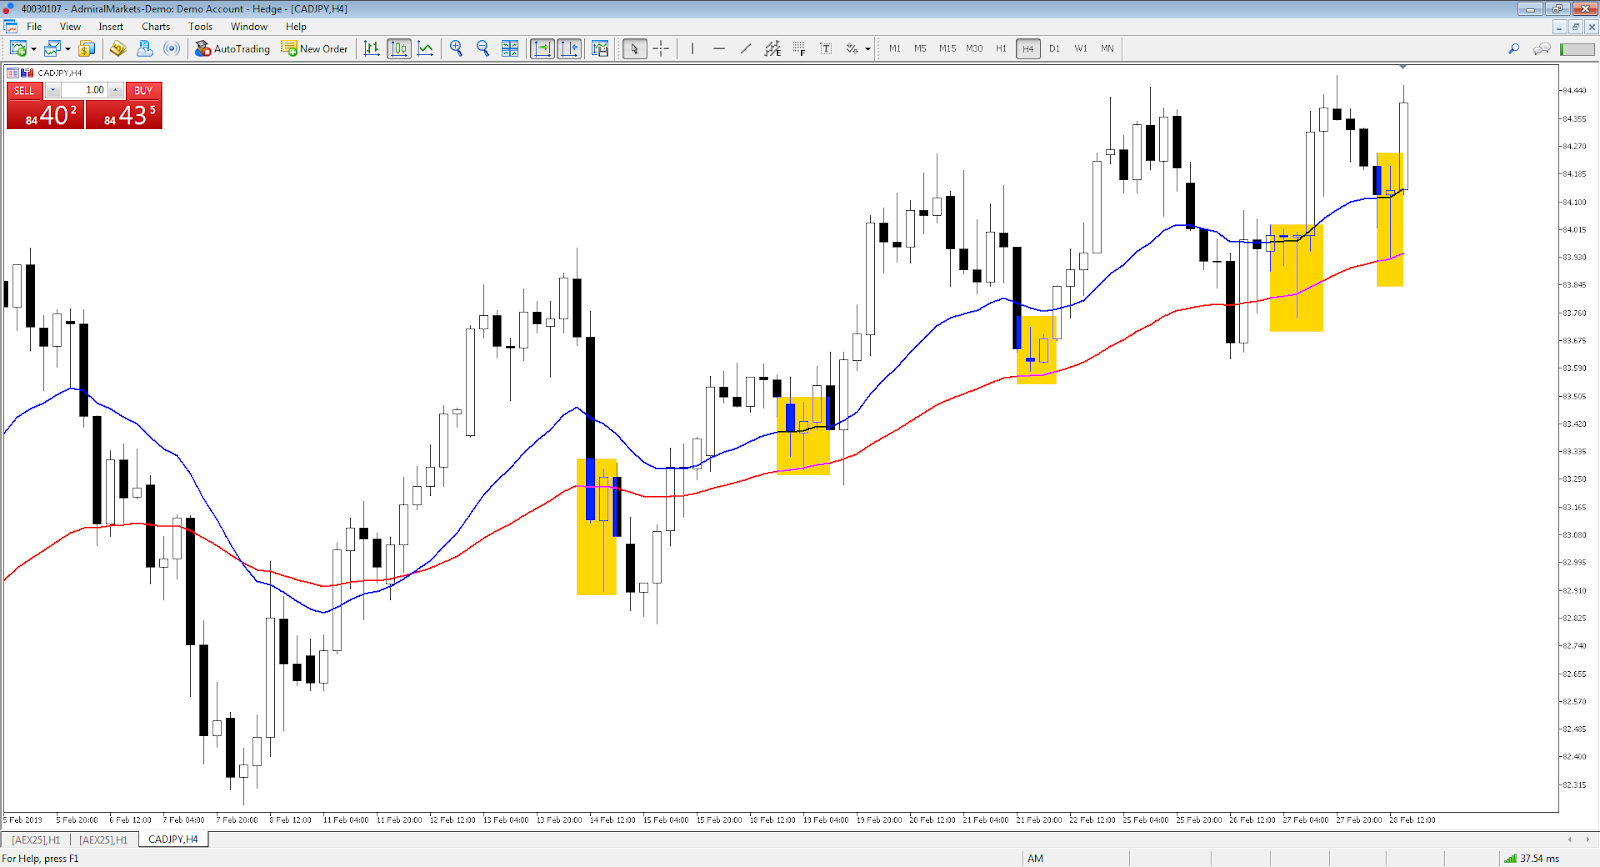 CAD/JPY 4 hour chart